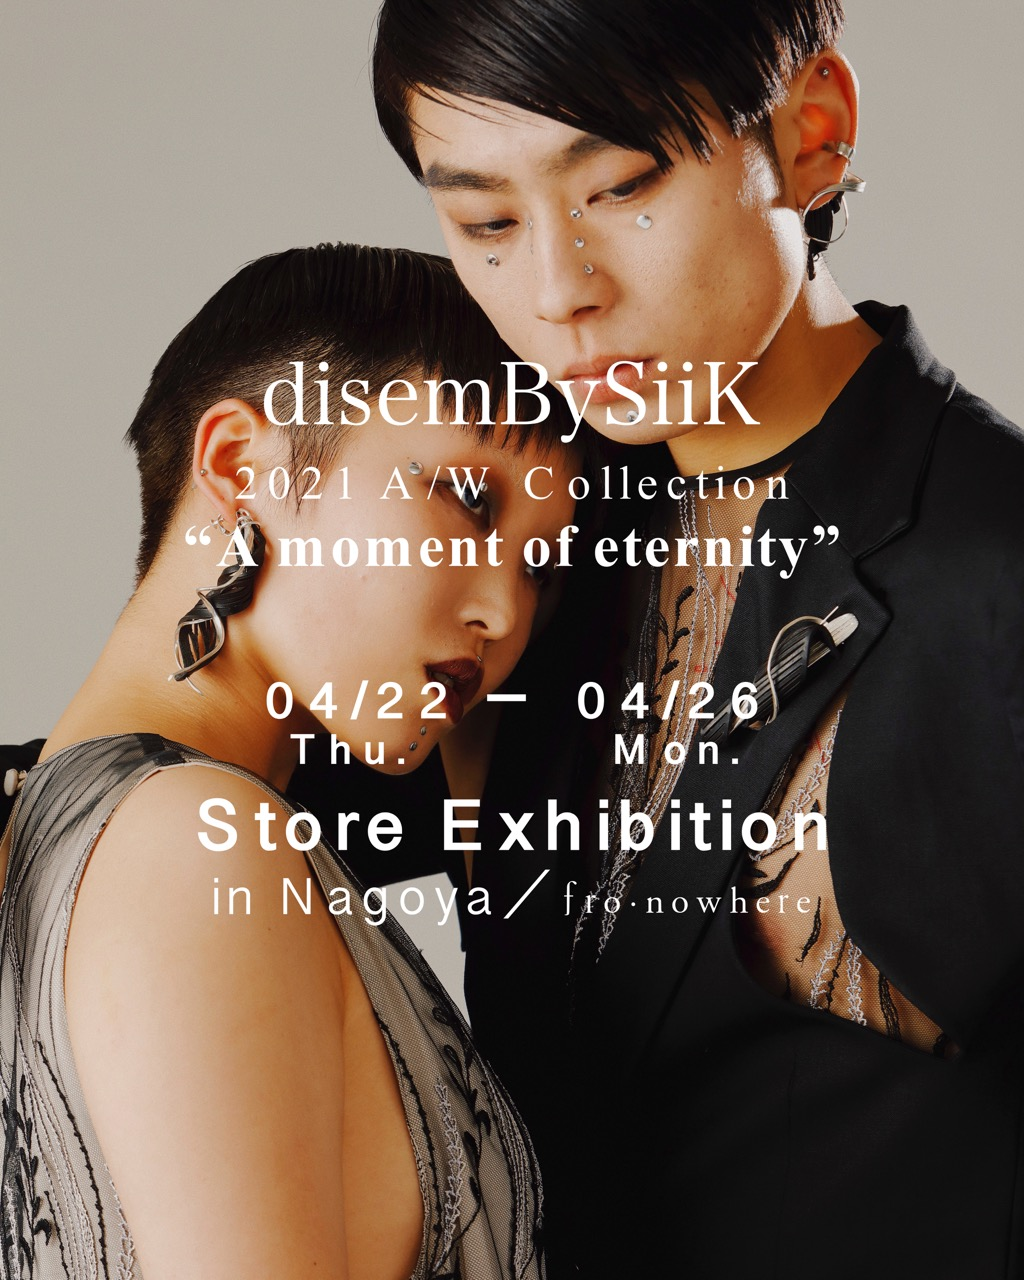 【event】disemBySiiK 21-22 A/W collection 新作受注会のご案内